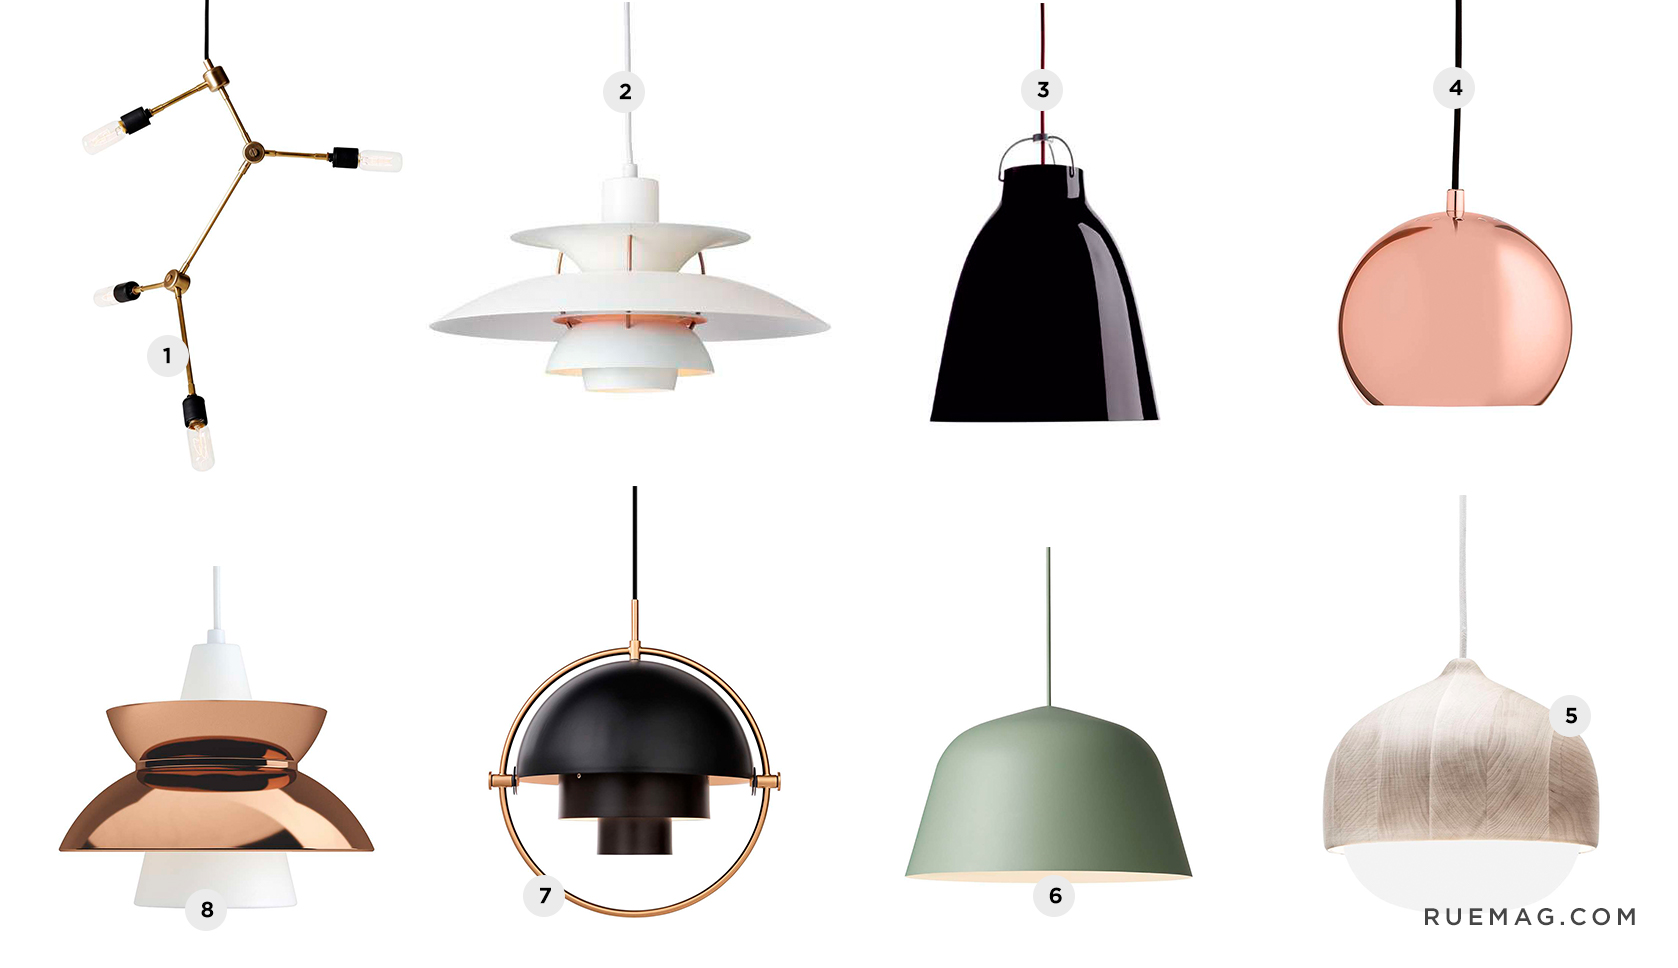 Home is my castle. Lighting trends this year